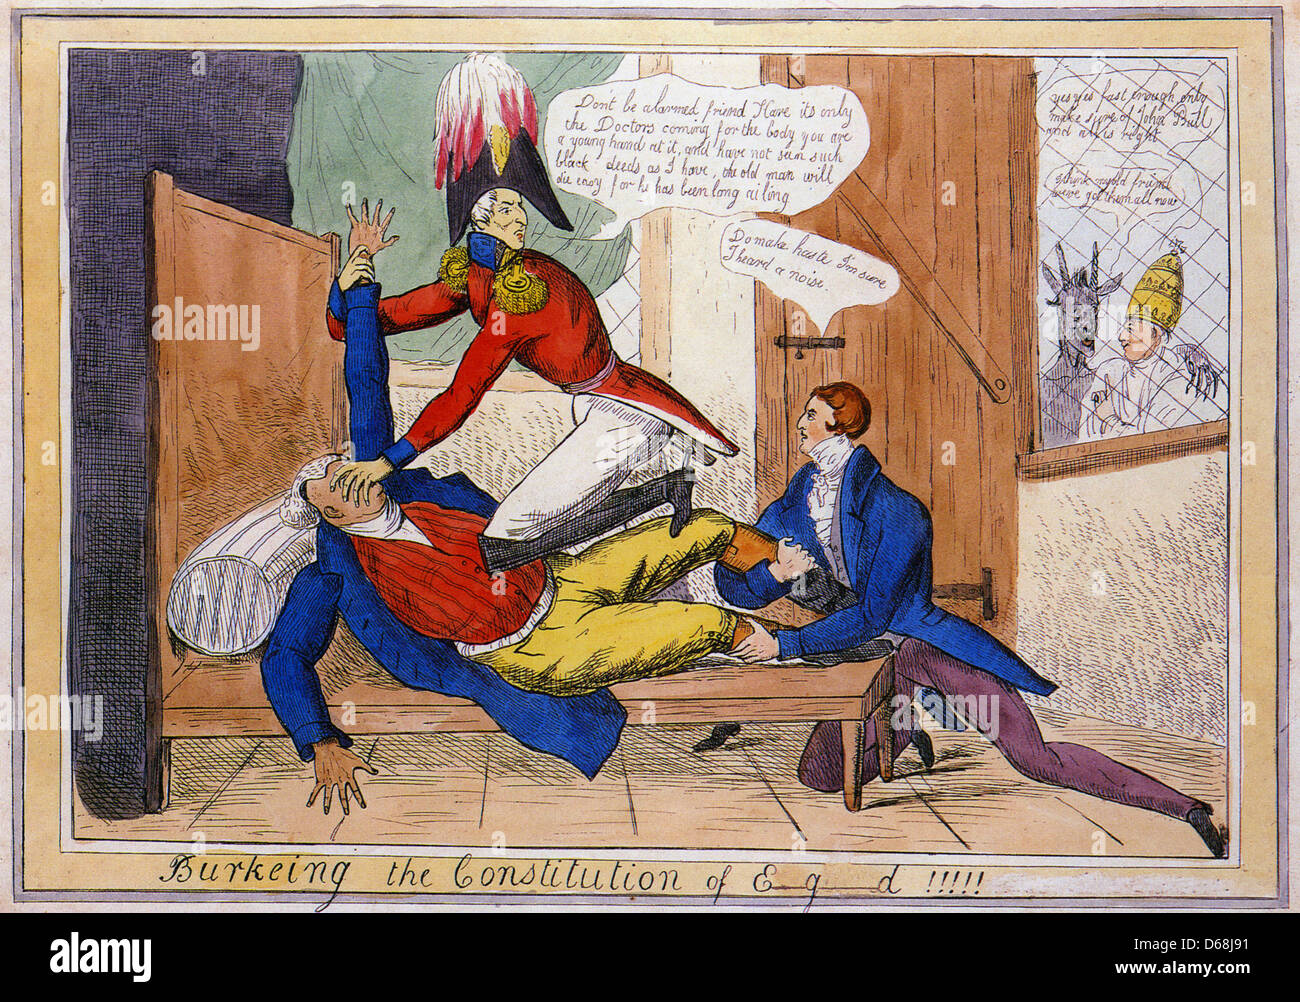 CATHOLIC EMANCIPATION Duke of  Wellington and Robert Peel murder John Bull watched with approval by Satan and  Pope - Stock Image